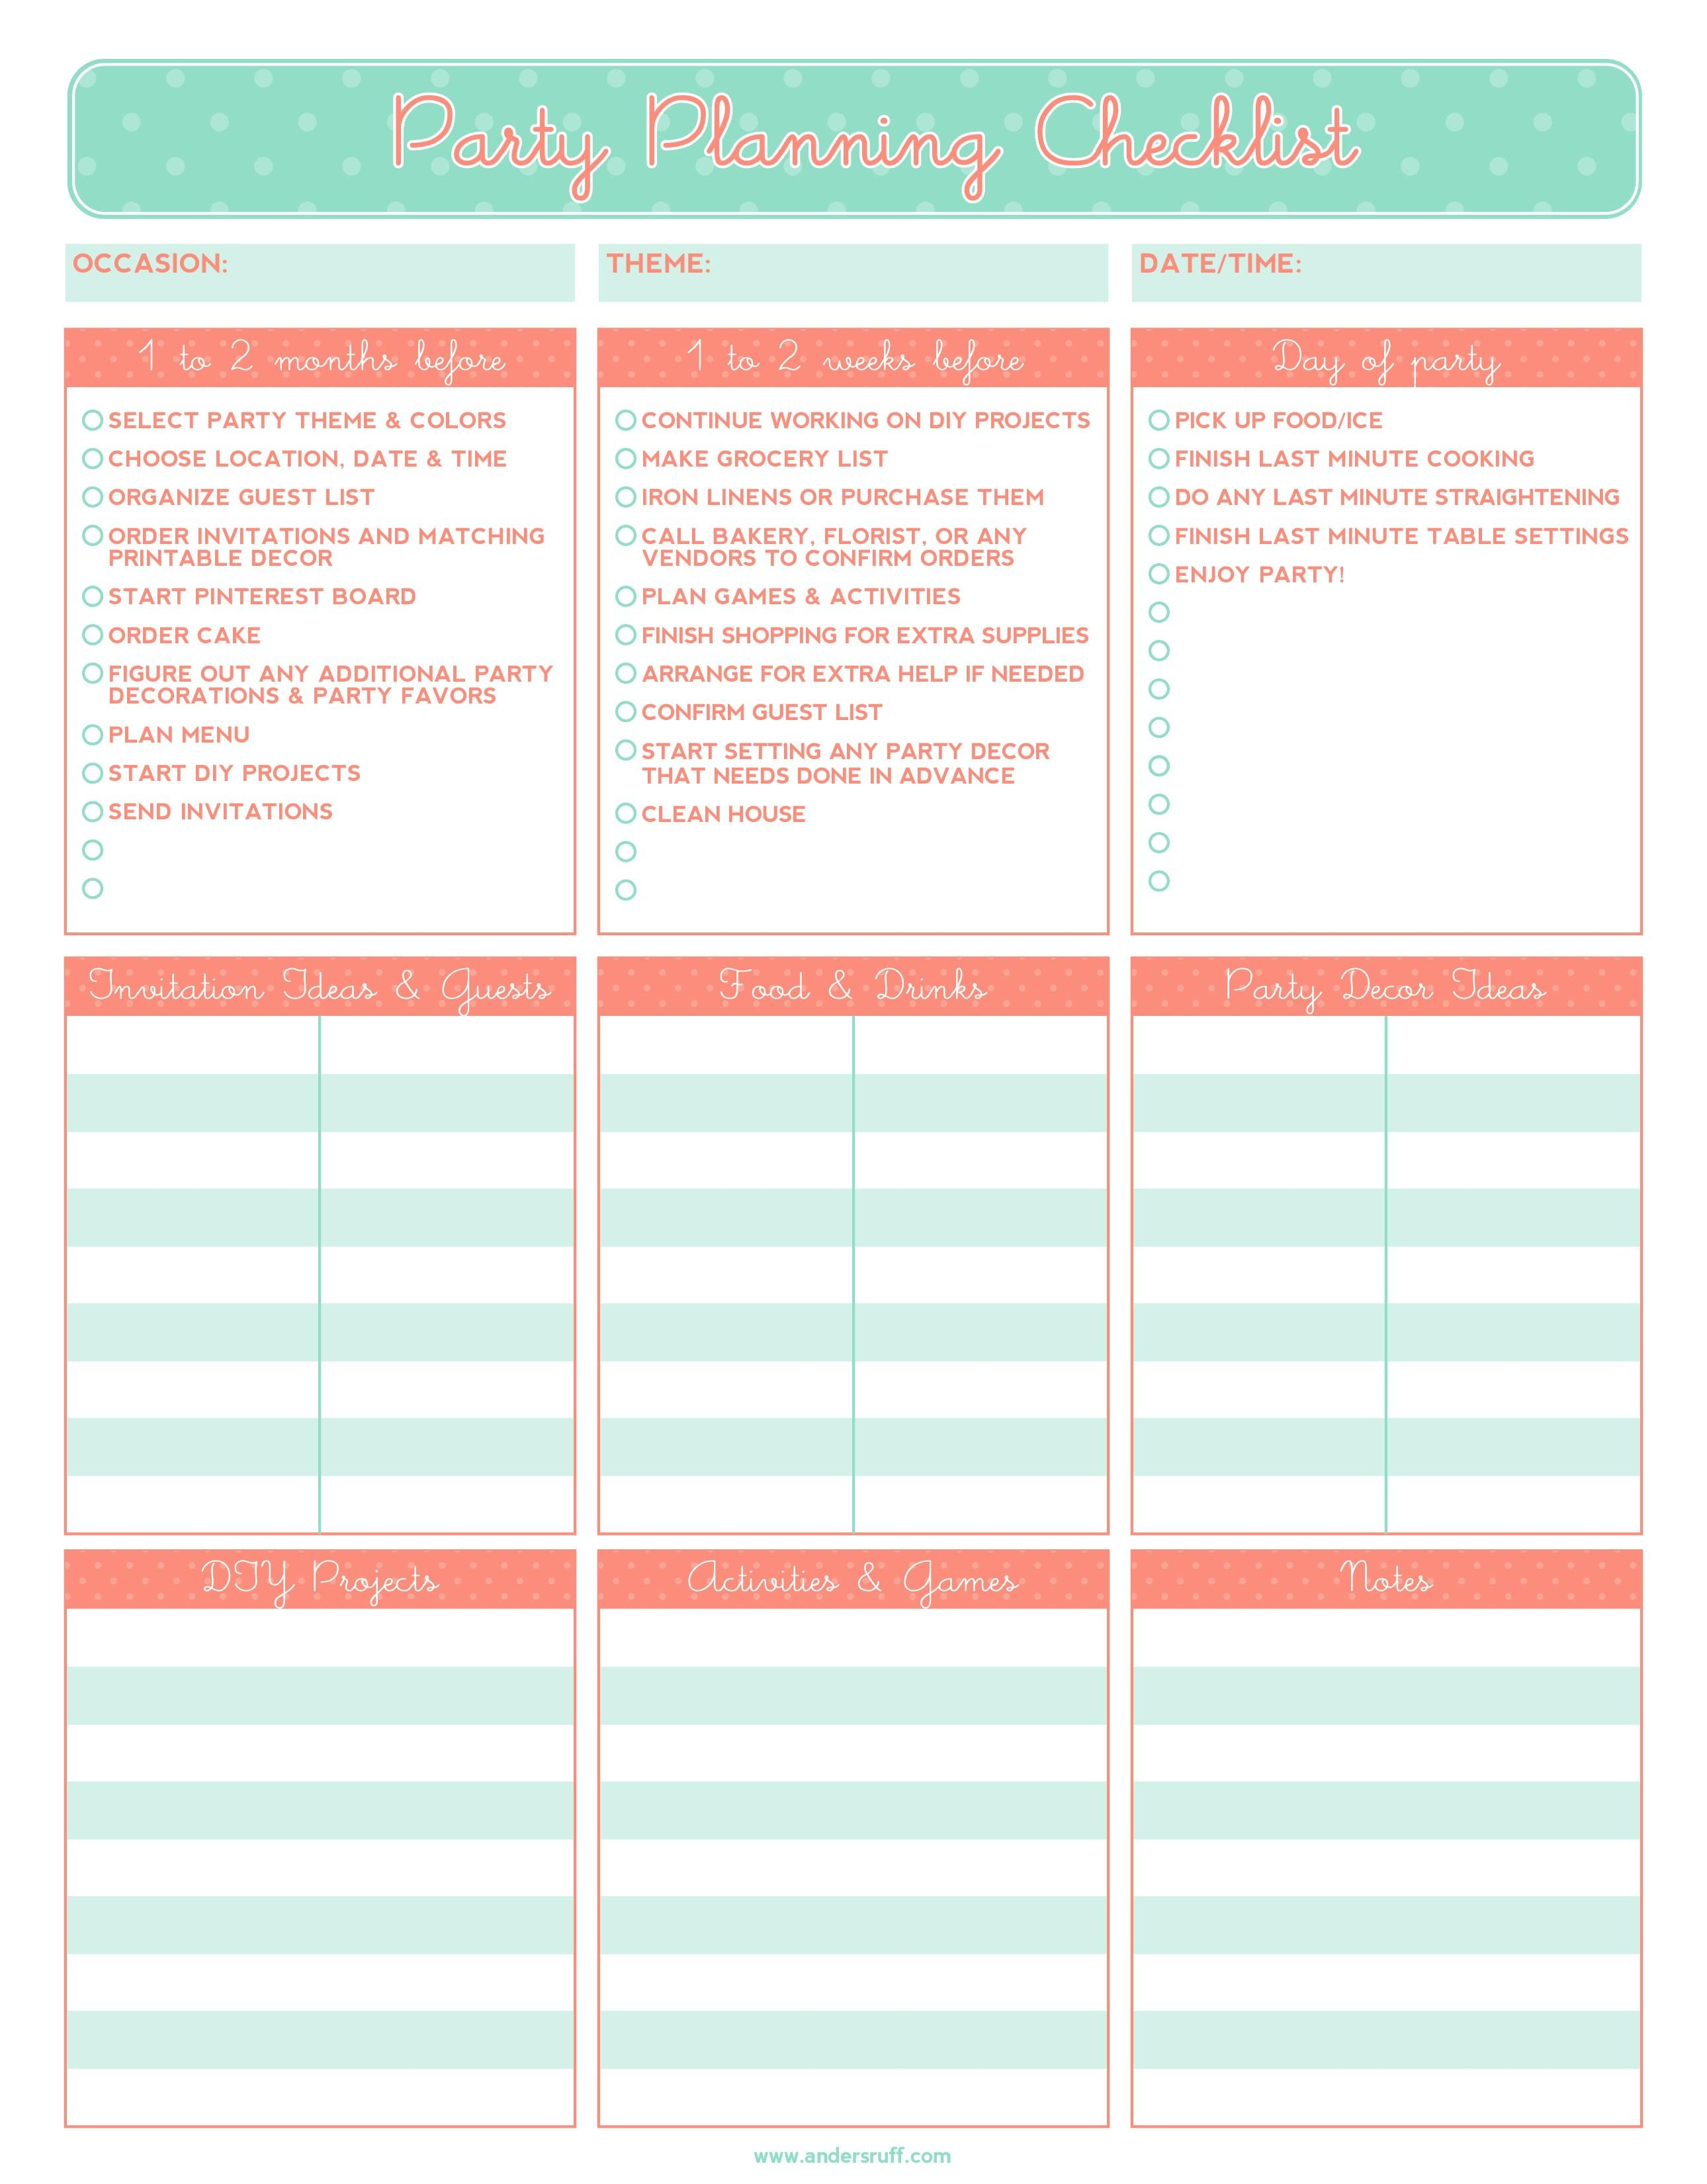 Birthday Party Planning Checklist Template Free